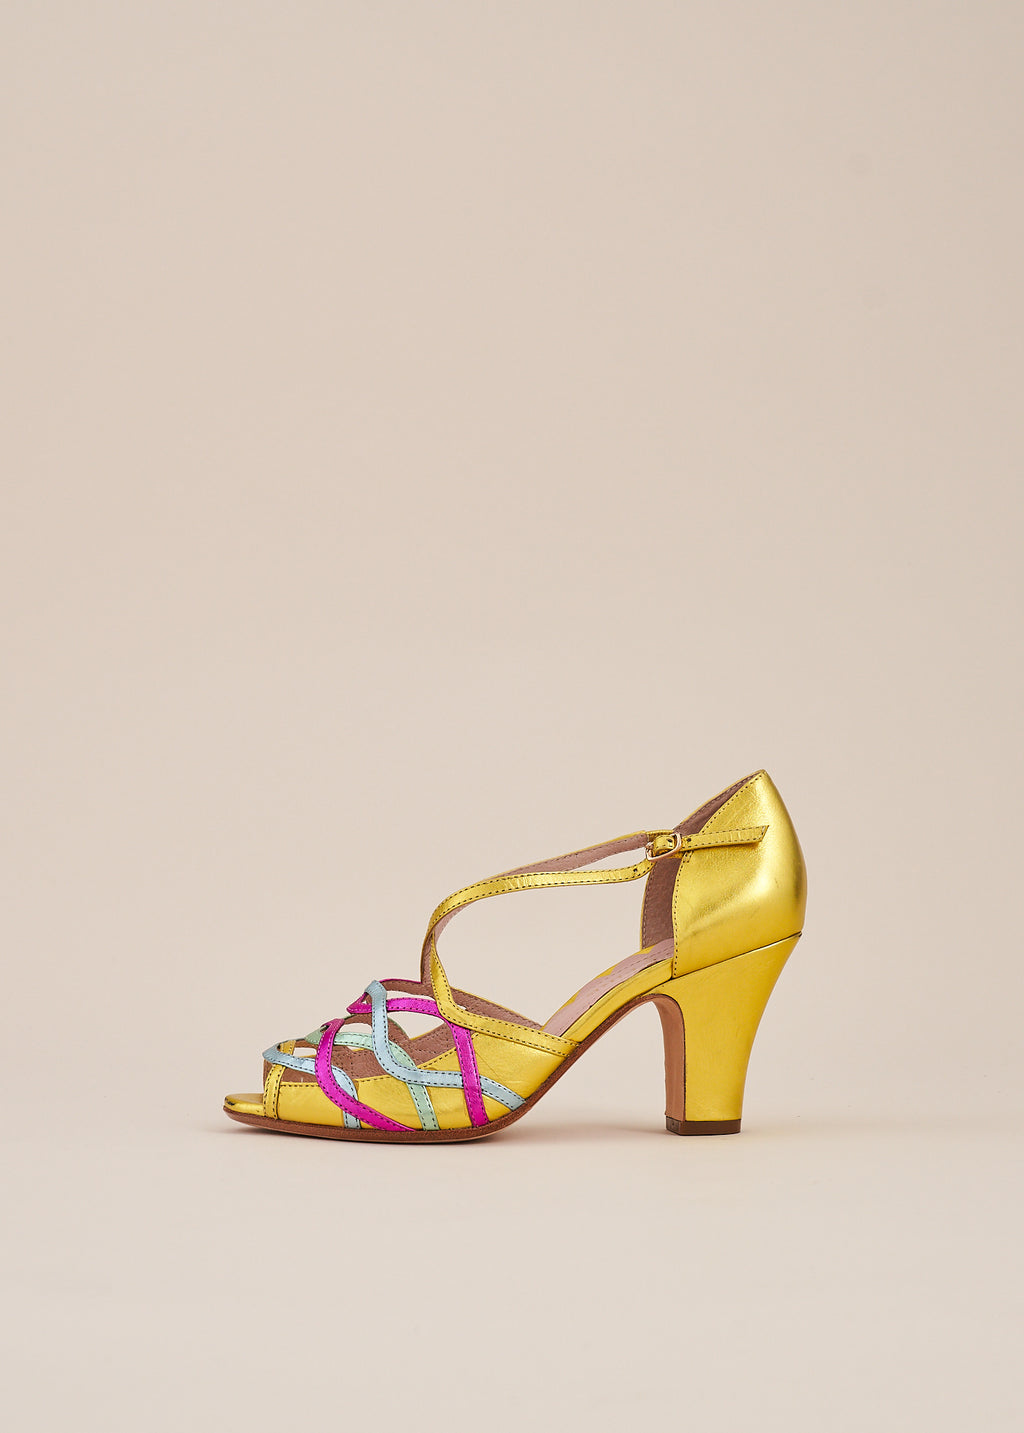 Adele Gold Multi Metallic Leather Strappy Heeled Sandal